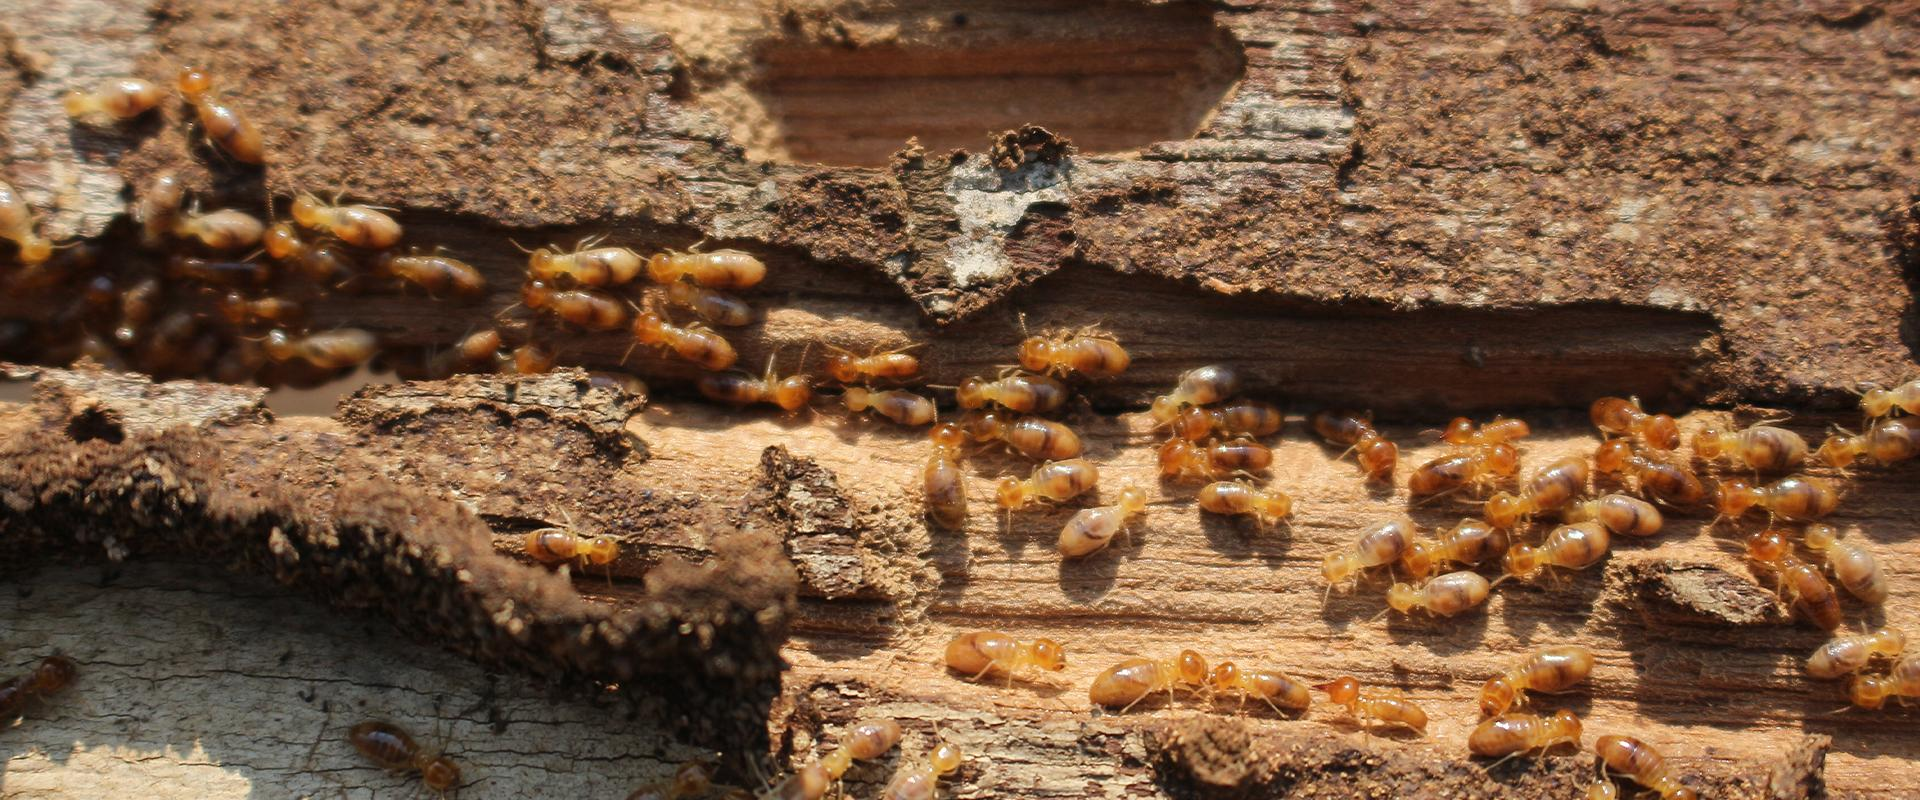 termites in the wood